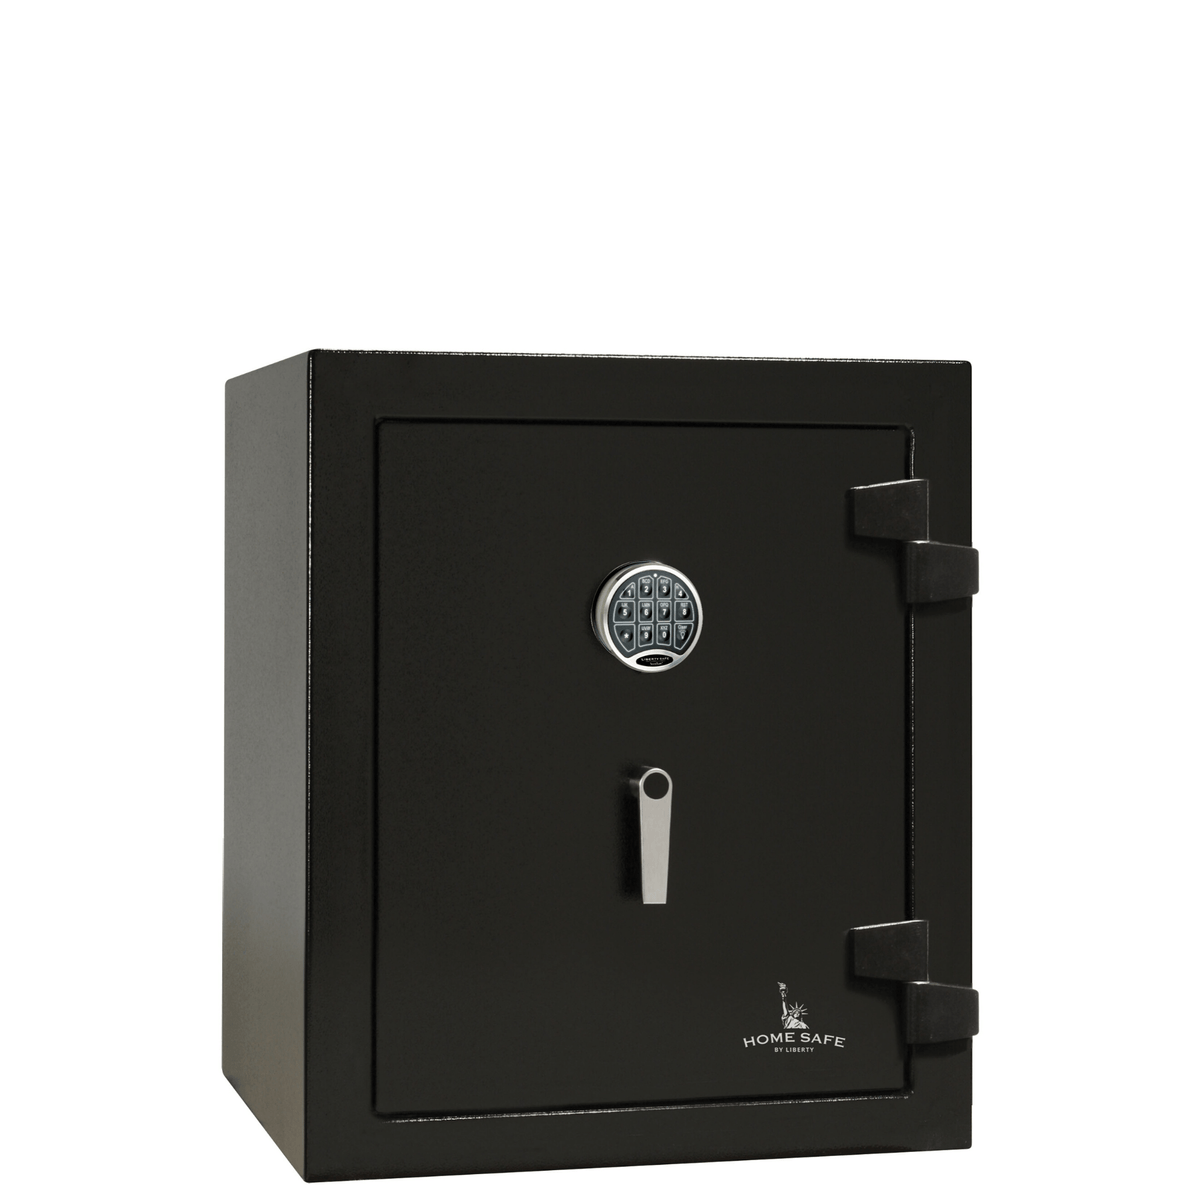 "Home Safe Series | 60 Minute Fire Protection | 8 | Dimensions: 30""(H) x 24.25""(W) x 22""(D) 